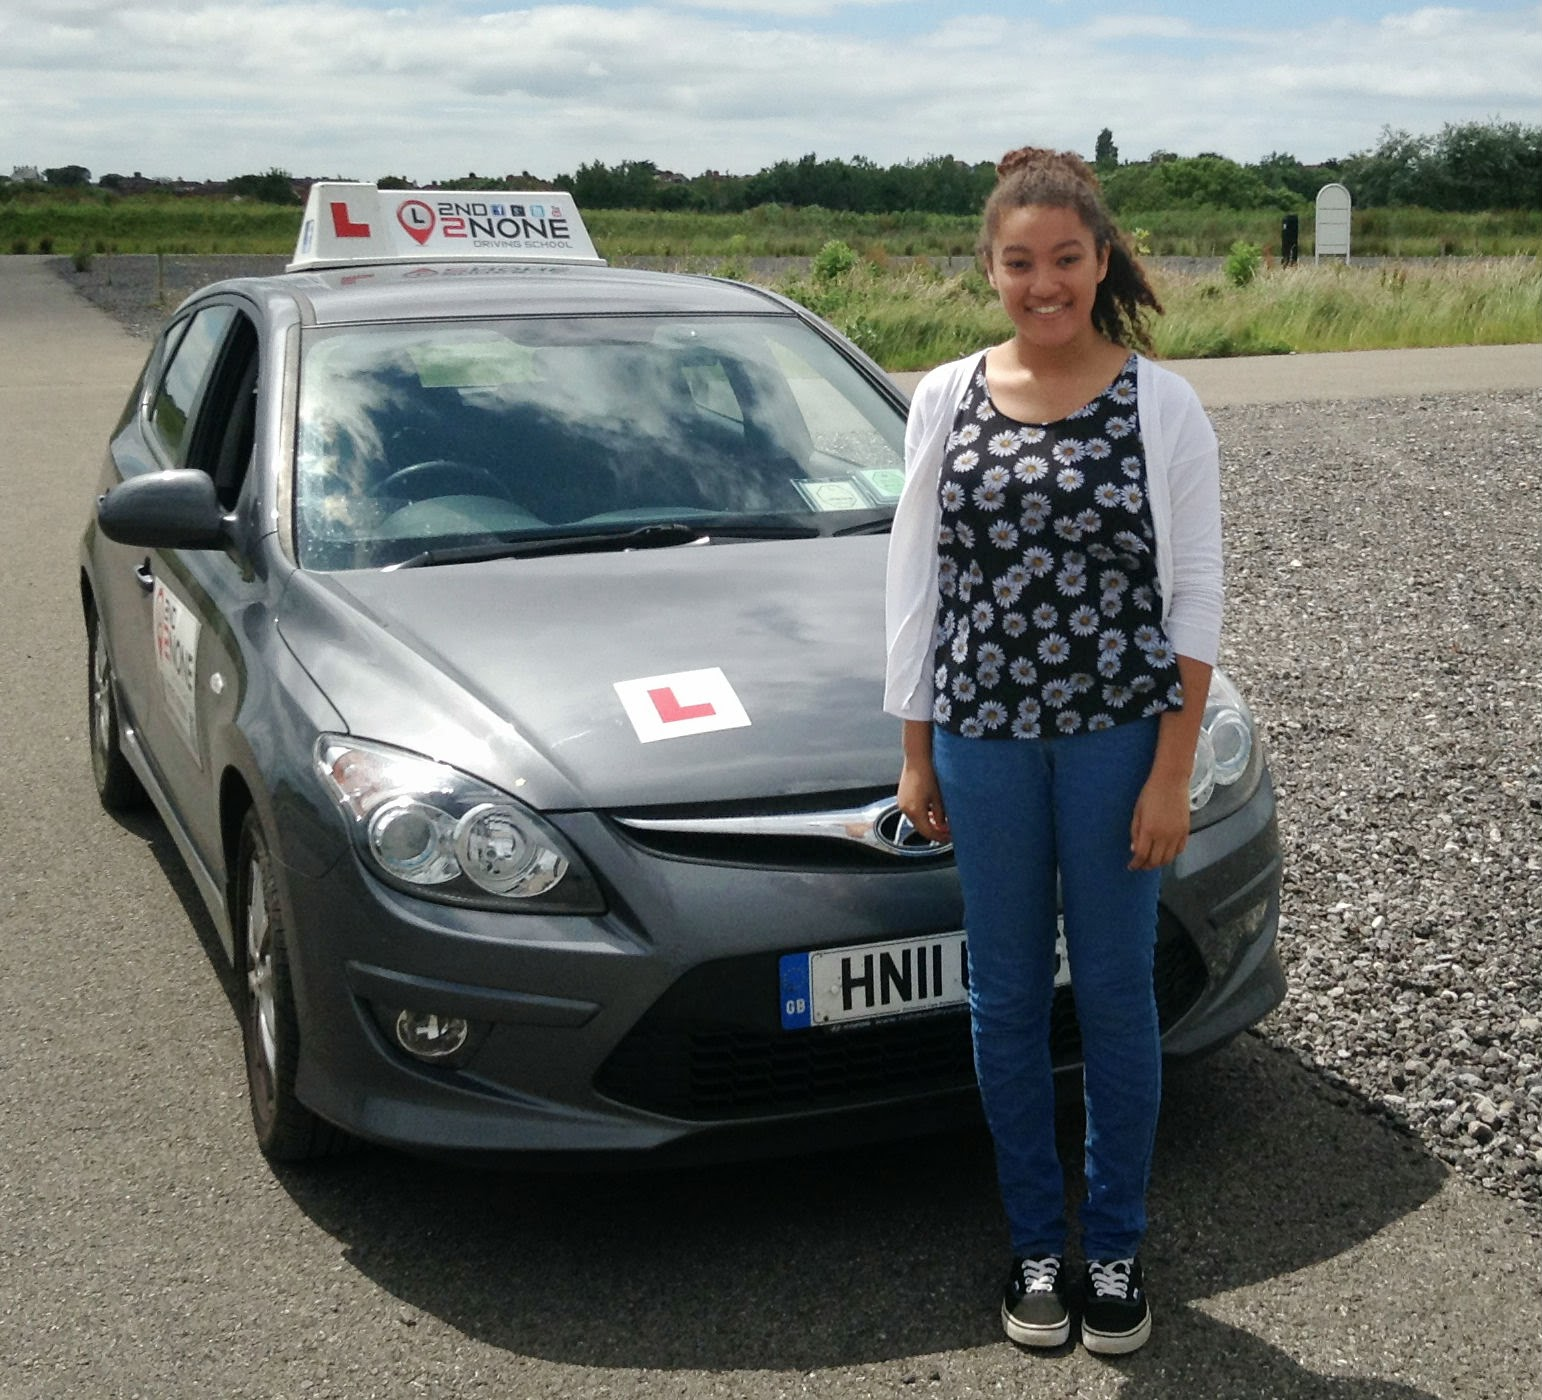 Under 17s driving lessons in Weymouth